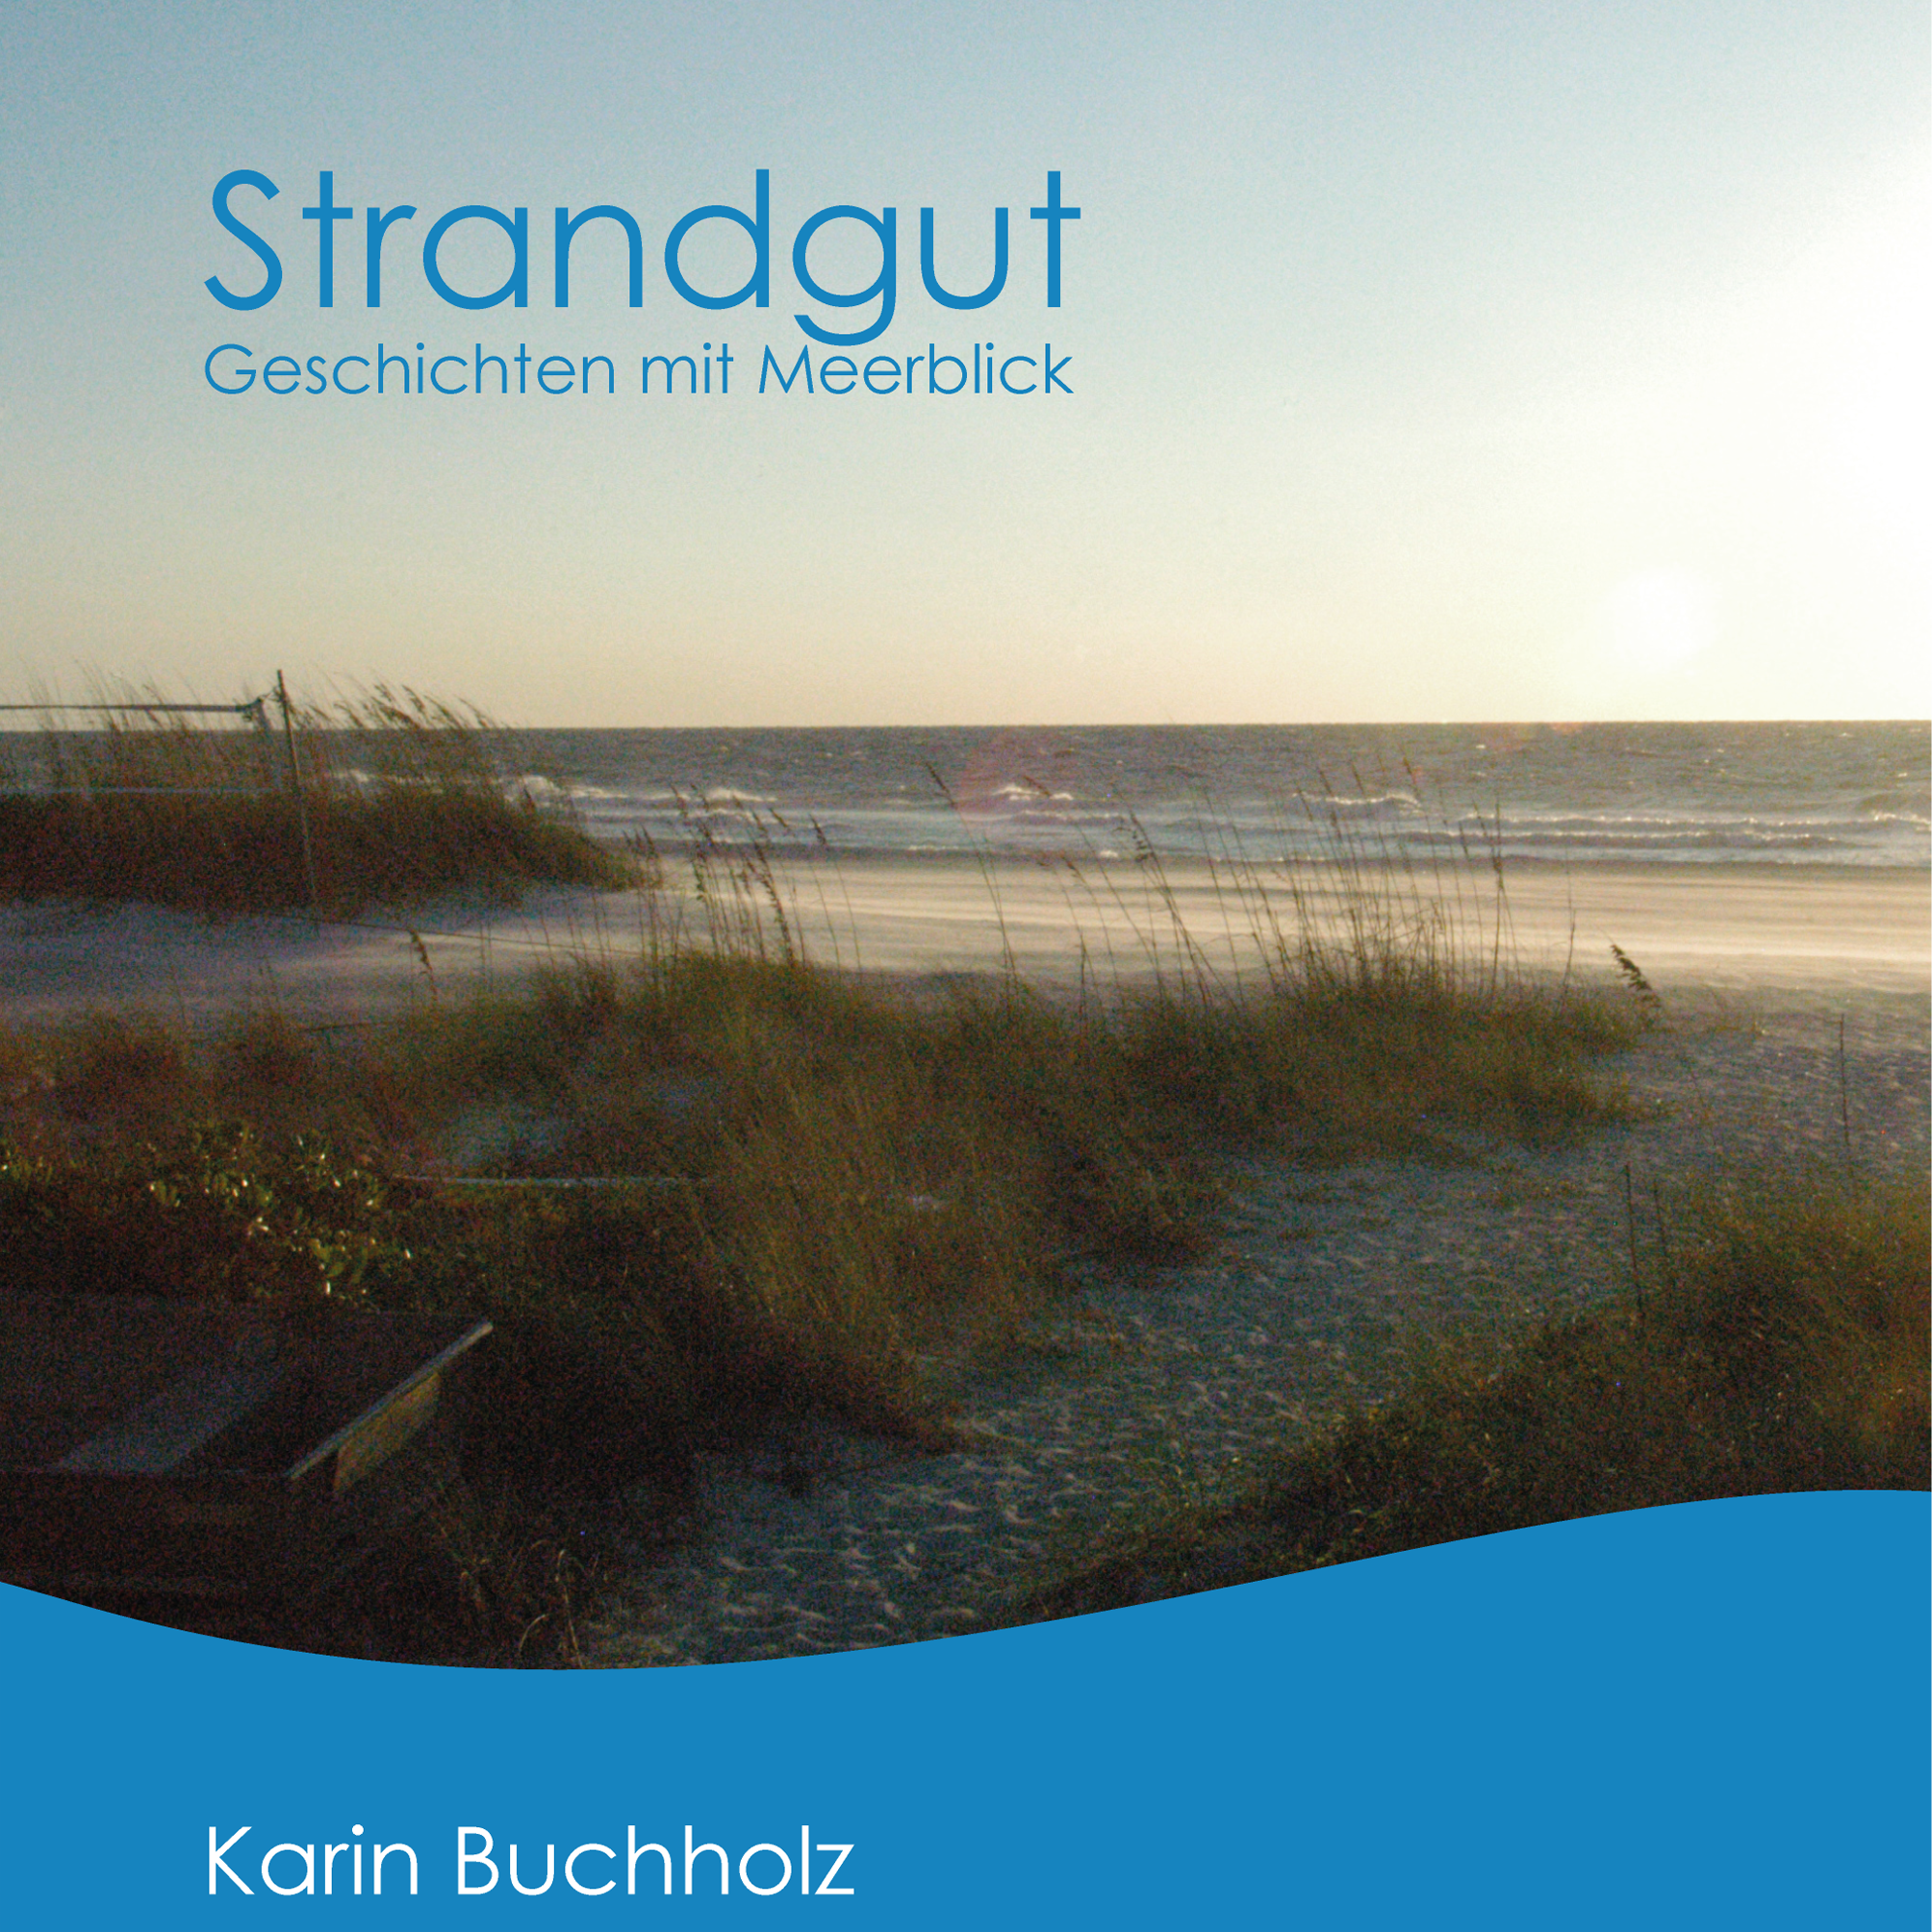 strandgut_1_-_cover_front_-_big